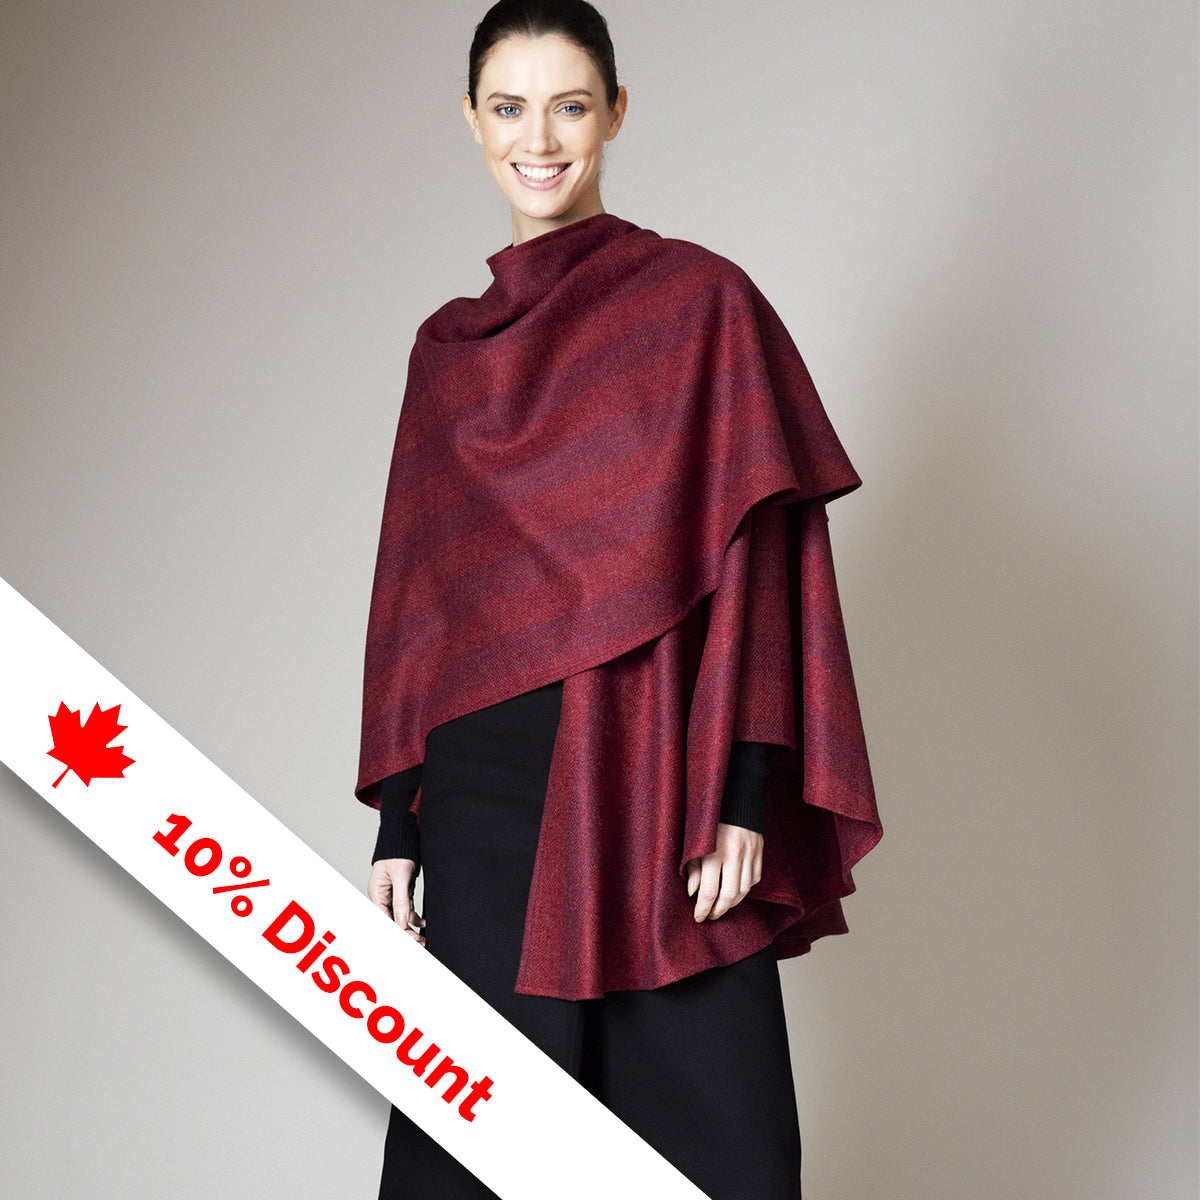 Canada Day Sale 10% off at Triona